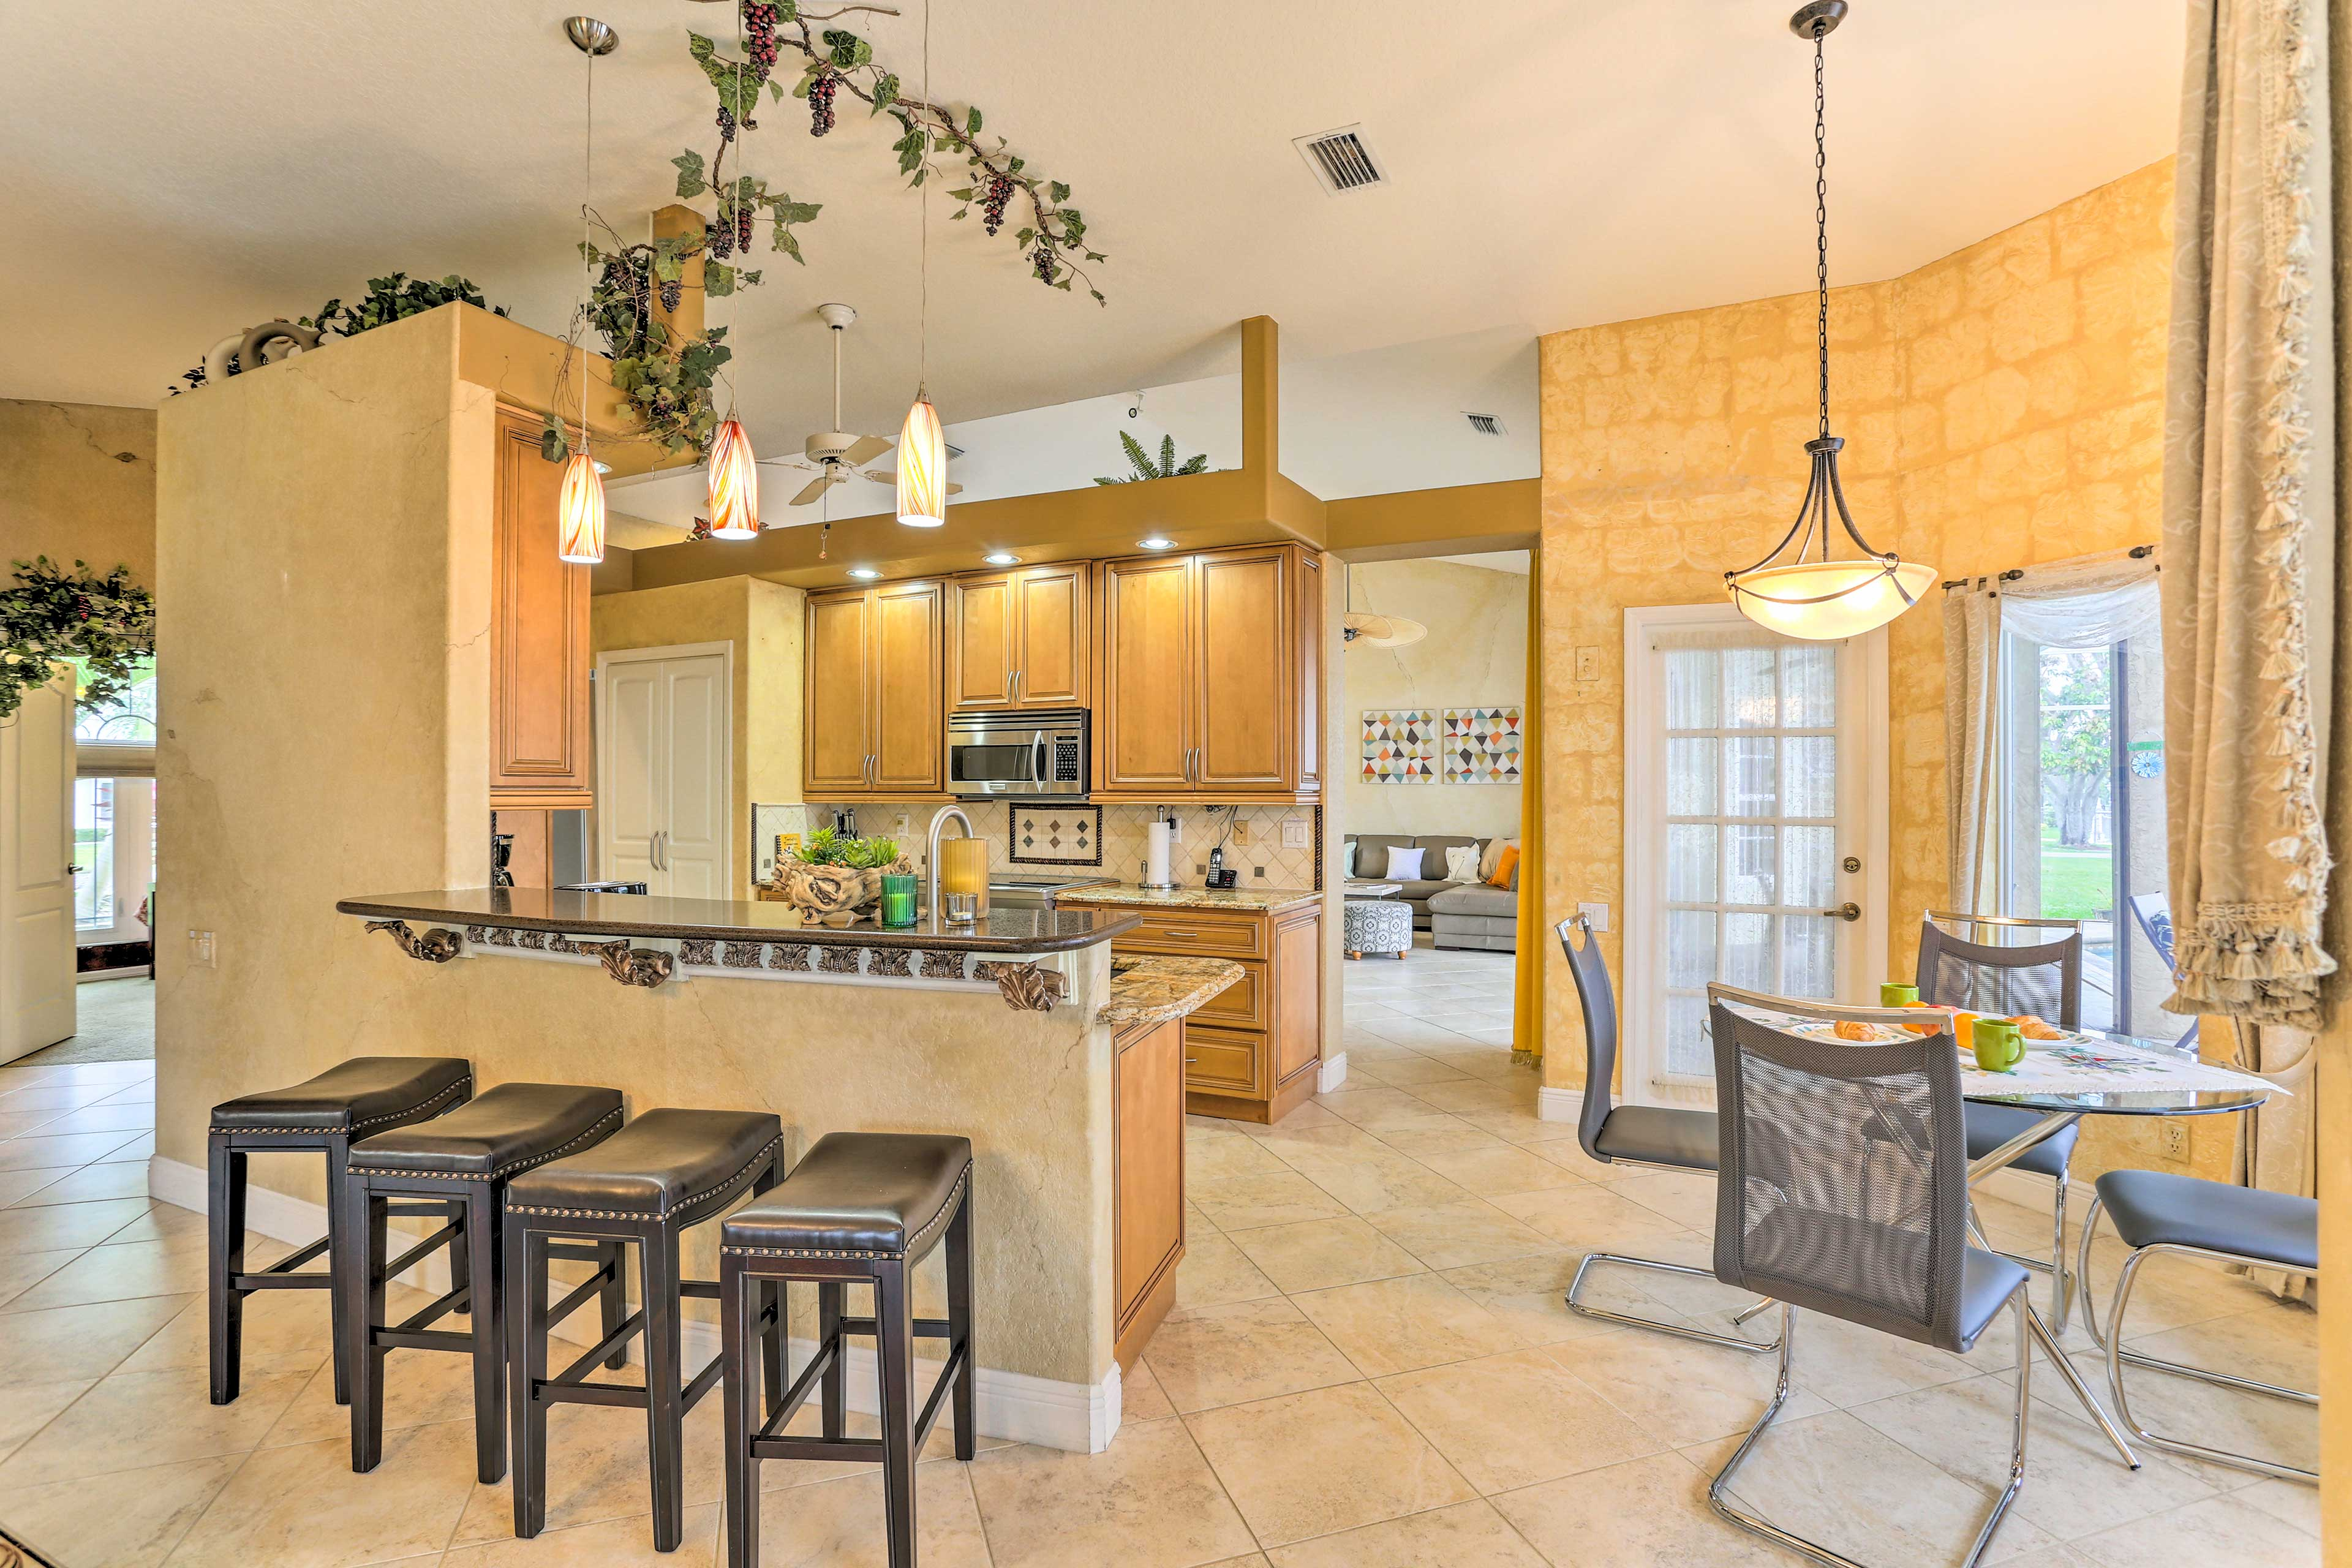 Discuss plans over coffee at the breakfast bar in this updated kitchen.